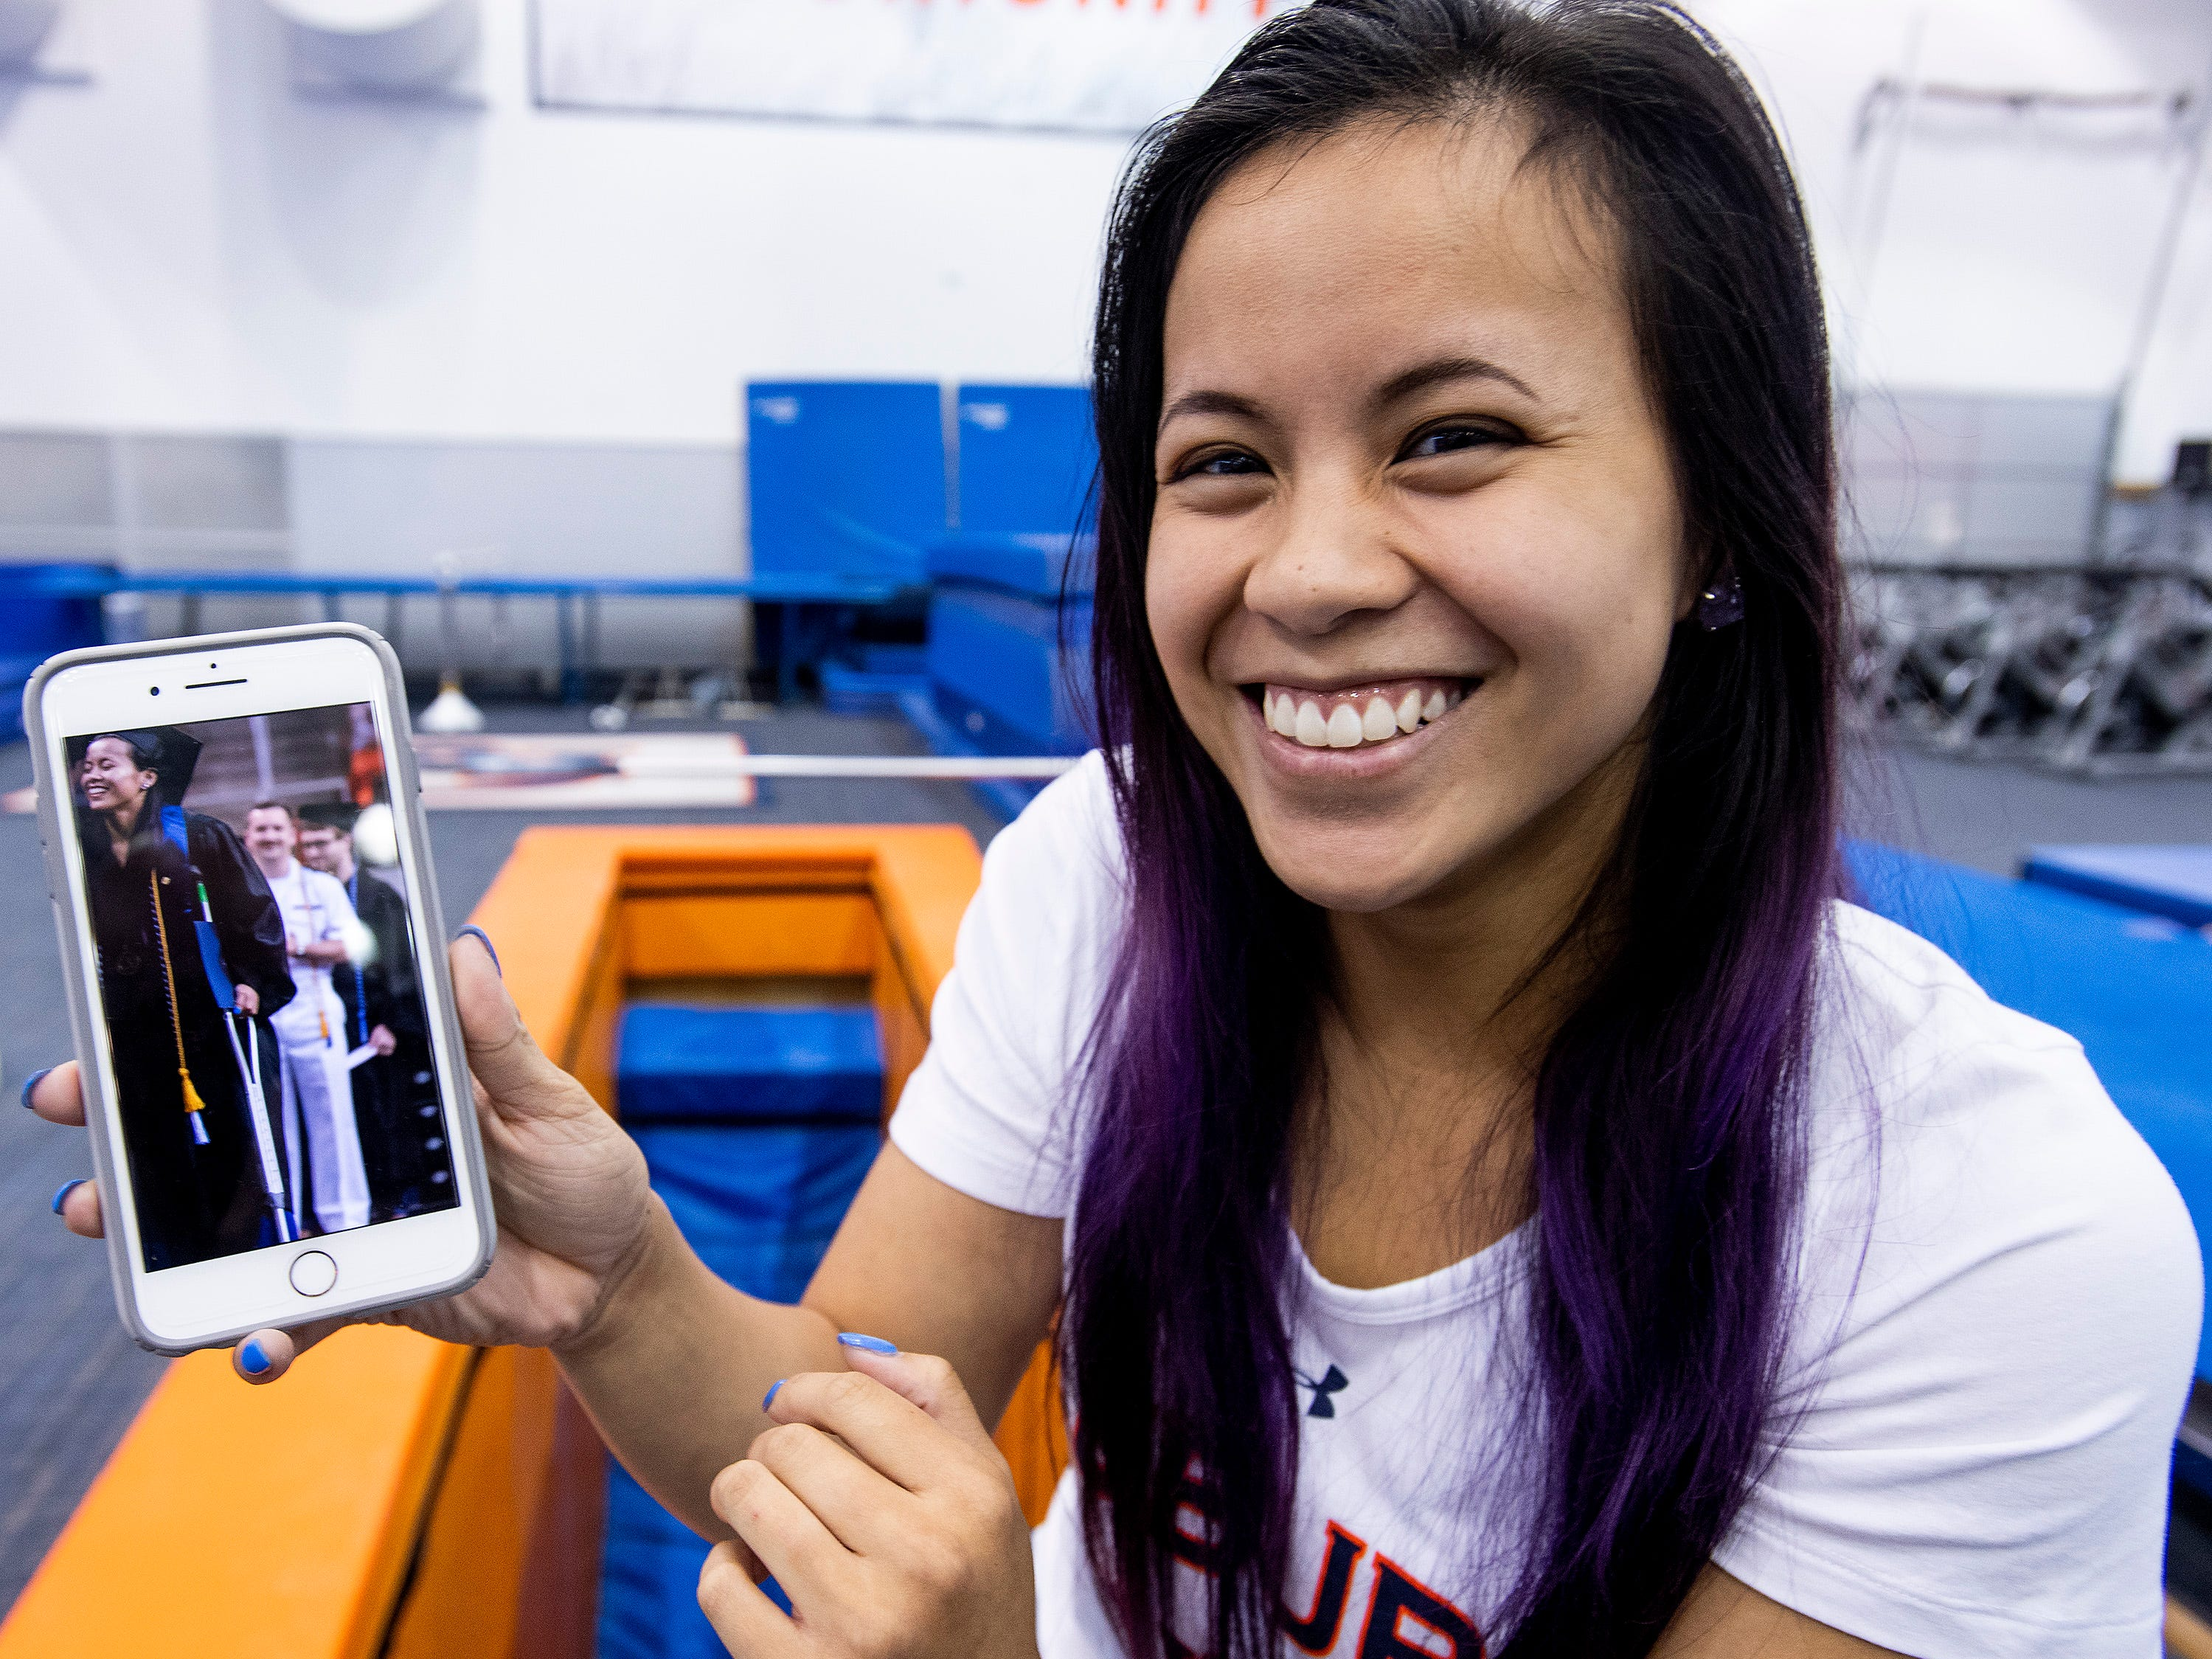 Auburn university gymnast Sam Cerio shows photos of herself walking at her graduation, a week earlier, on the AU campus in Auburn, Ala., on Thursday May 9, 2019. Cerio, who recently graduated with a degree in aerospace engineering, dislocated both of her knees and ruptured multiple ligaments in her legs during an NCAA regional semifinal meet.